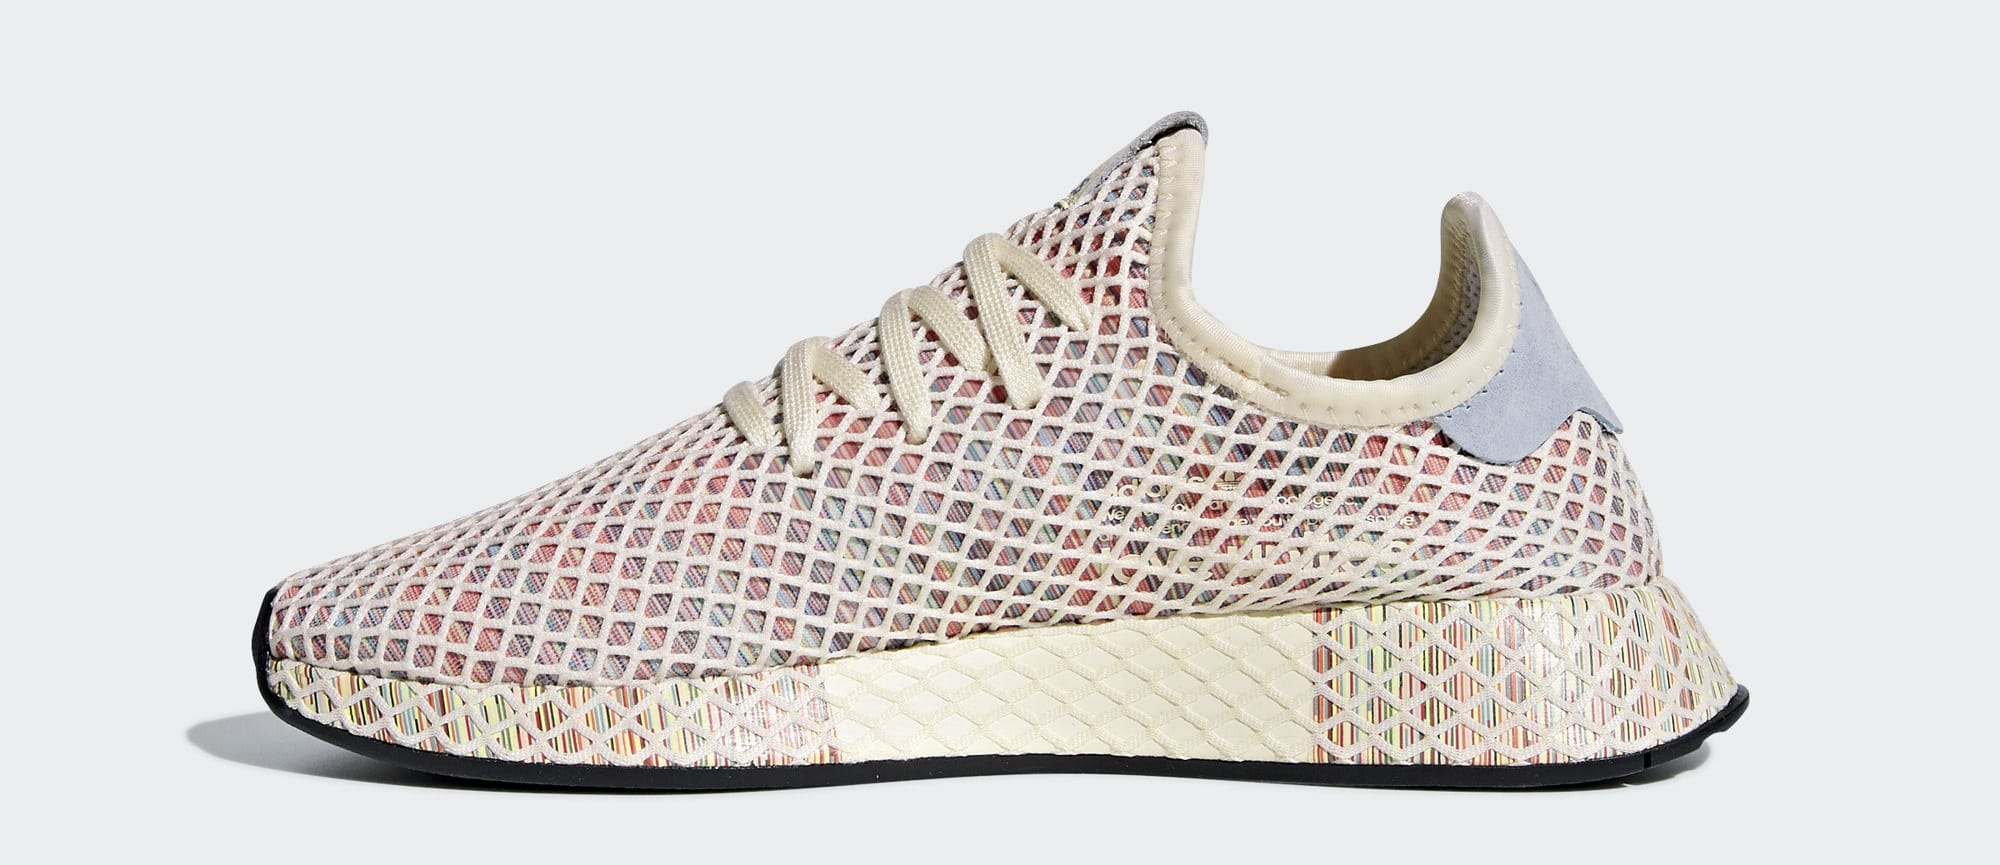 adidas Deerupt Runner Shoes Multicolor adidas Sneakers from Lyst | more